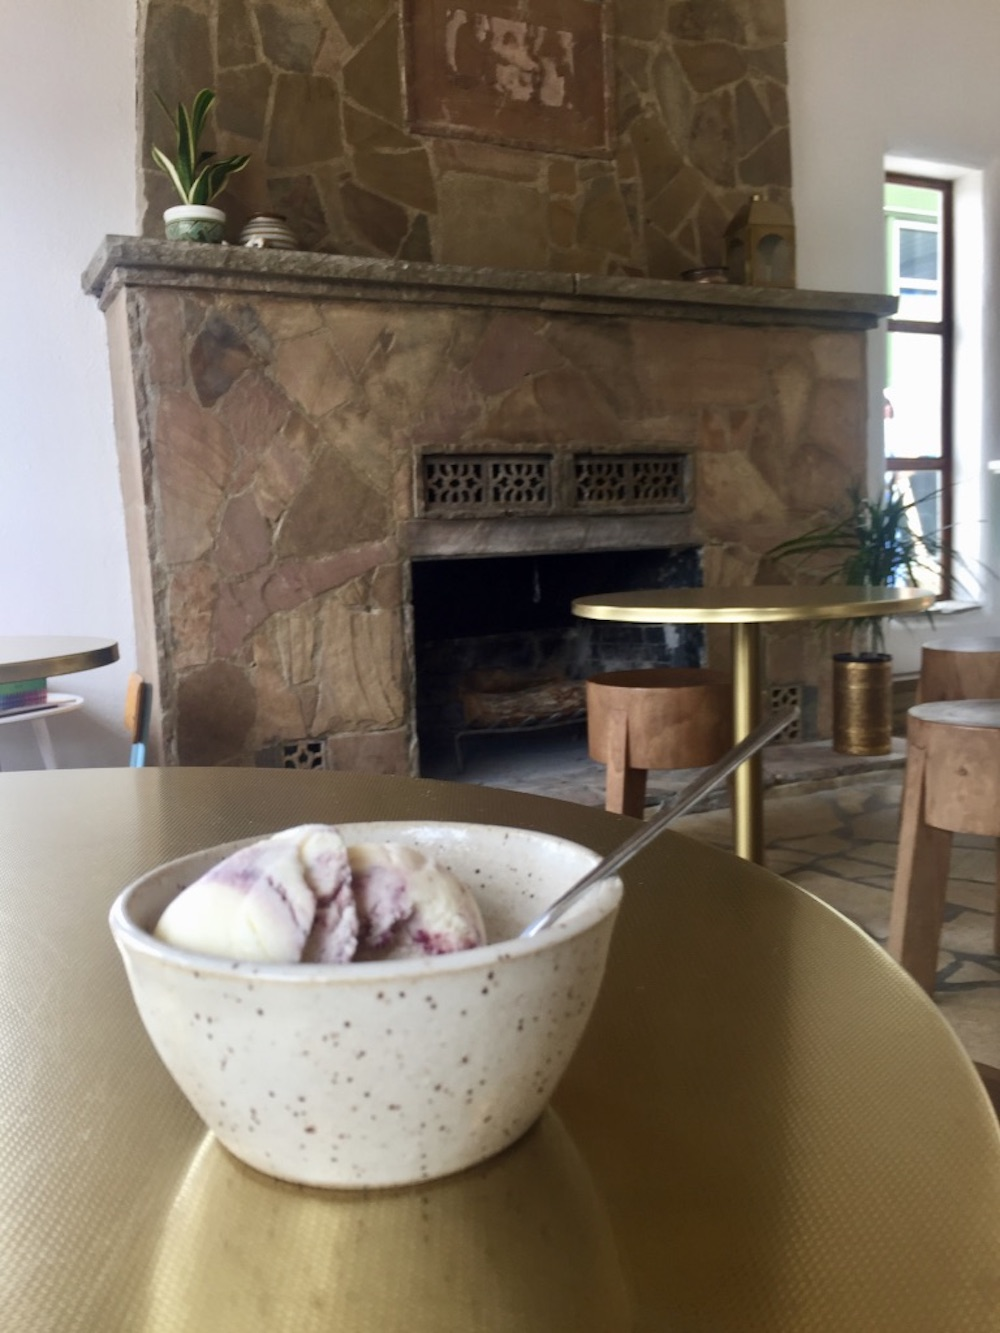 Speckled ceramic bowl of blackberry ice cream on a gold table at Little Lion Ice Cream in Wichita, Kansas